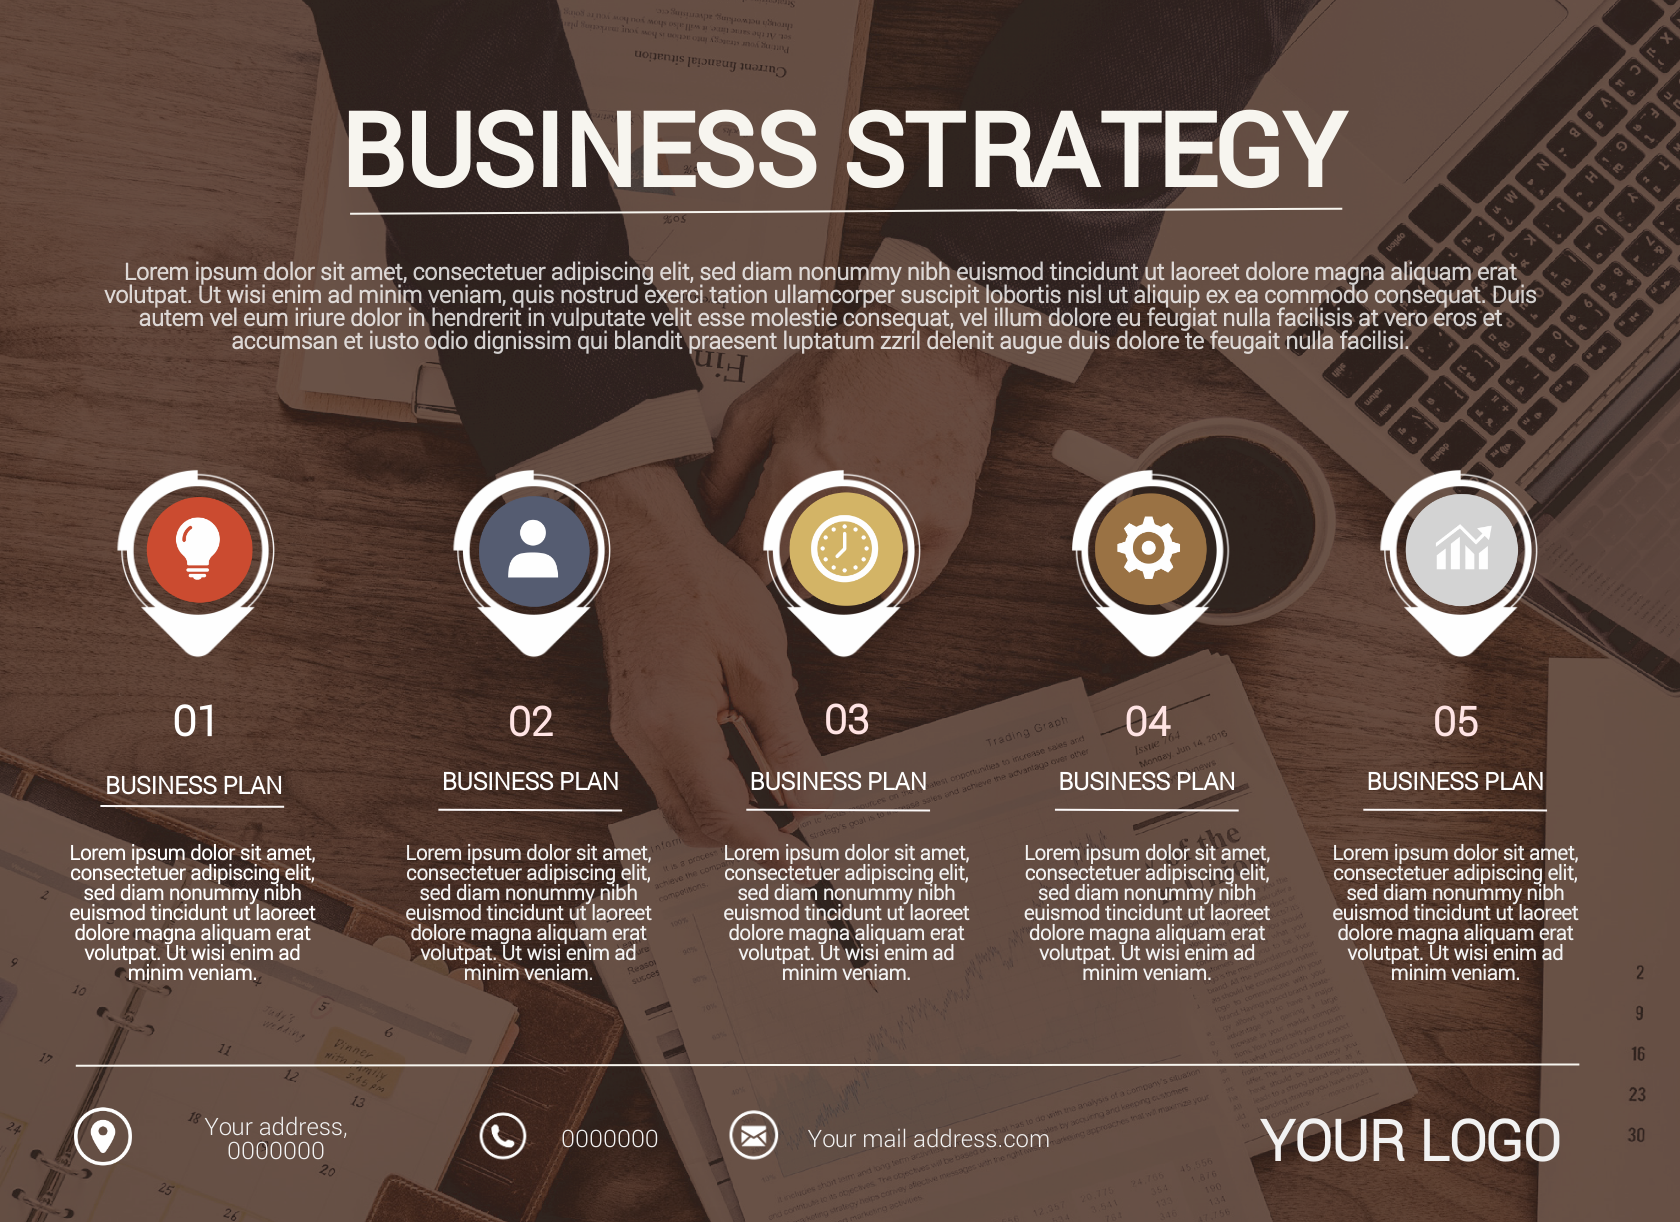 Business strategic infographic template